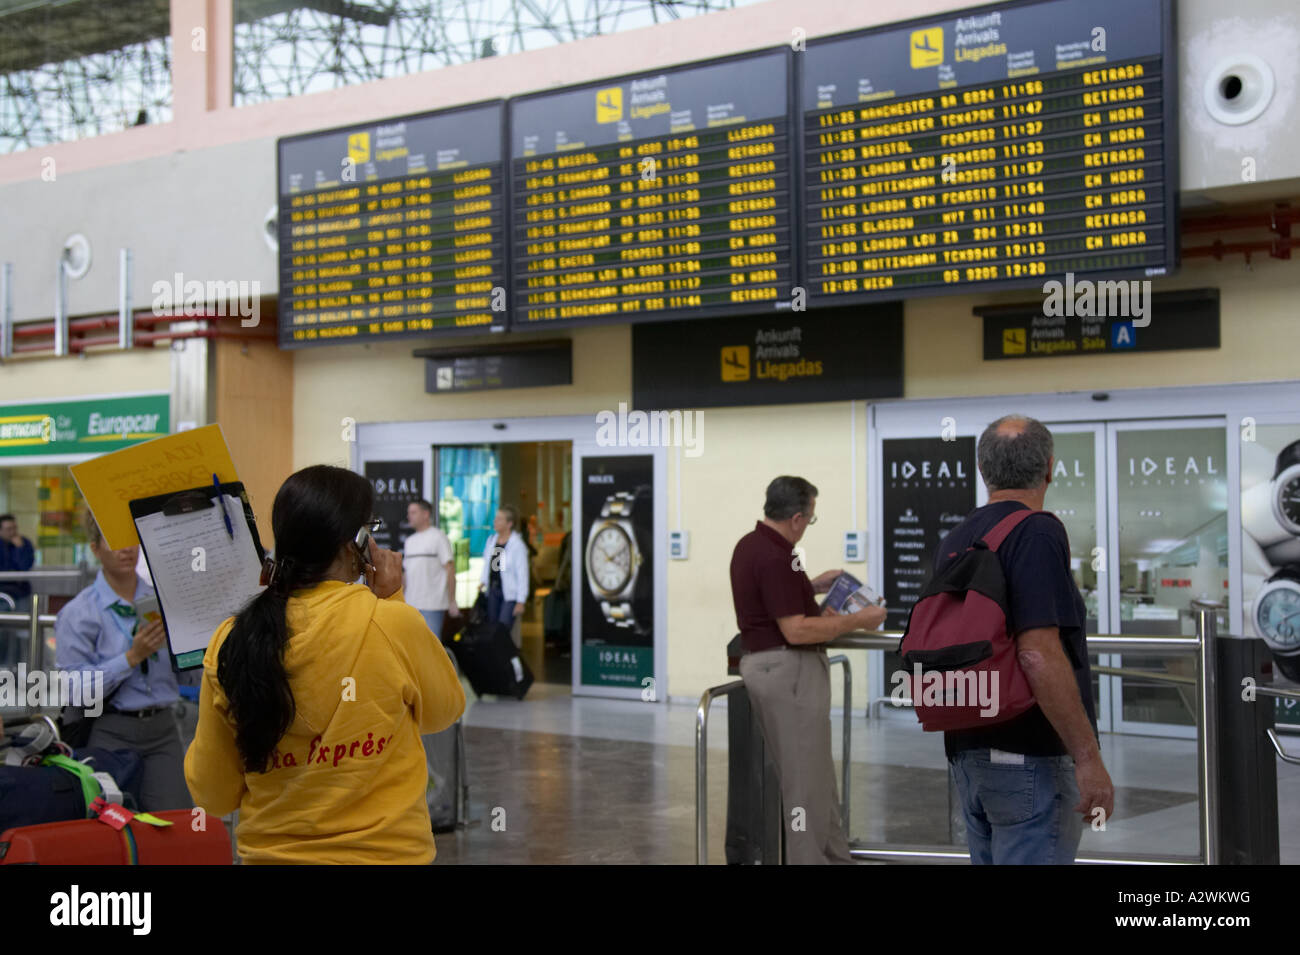 female spanish tour guide in yellow jumper waits in front of arrivals message board with list of passengers at Reina - Stock Image